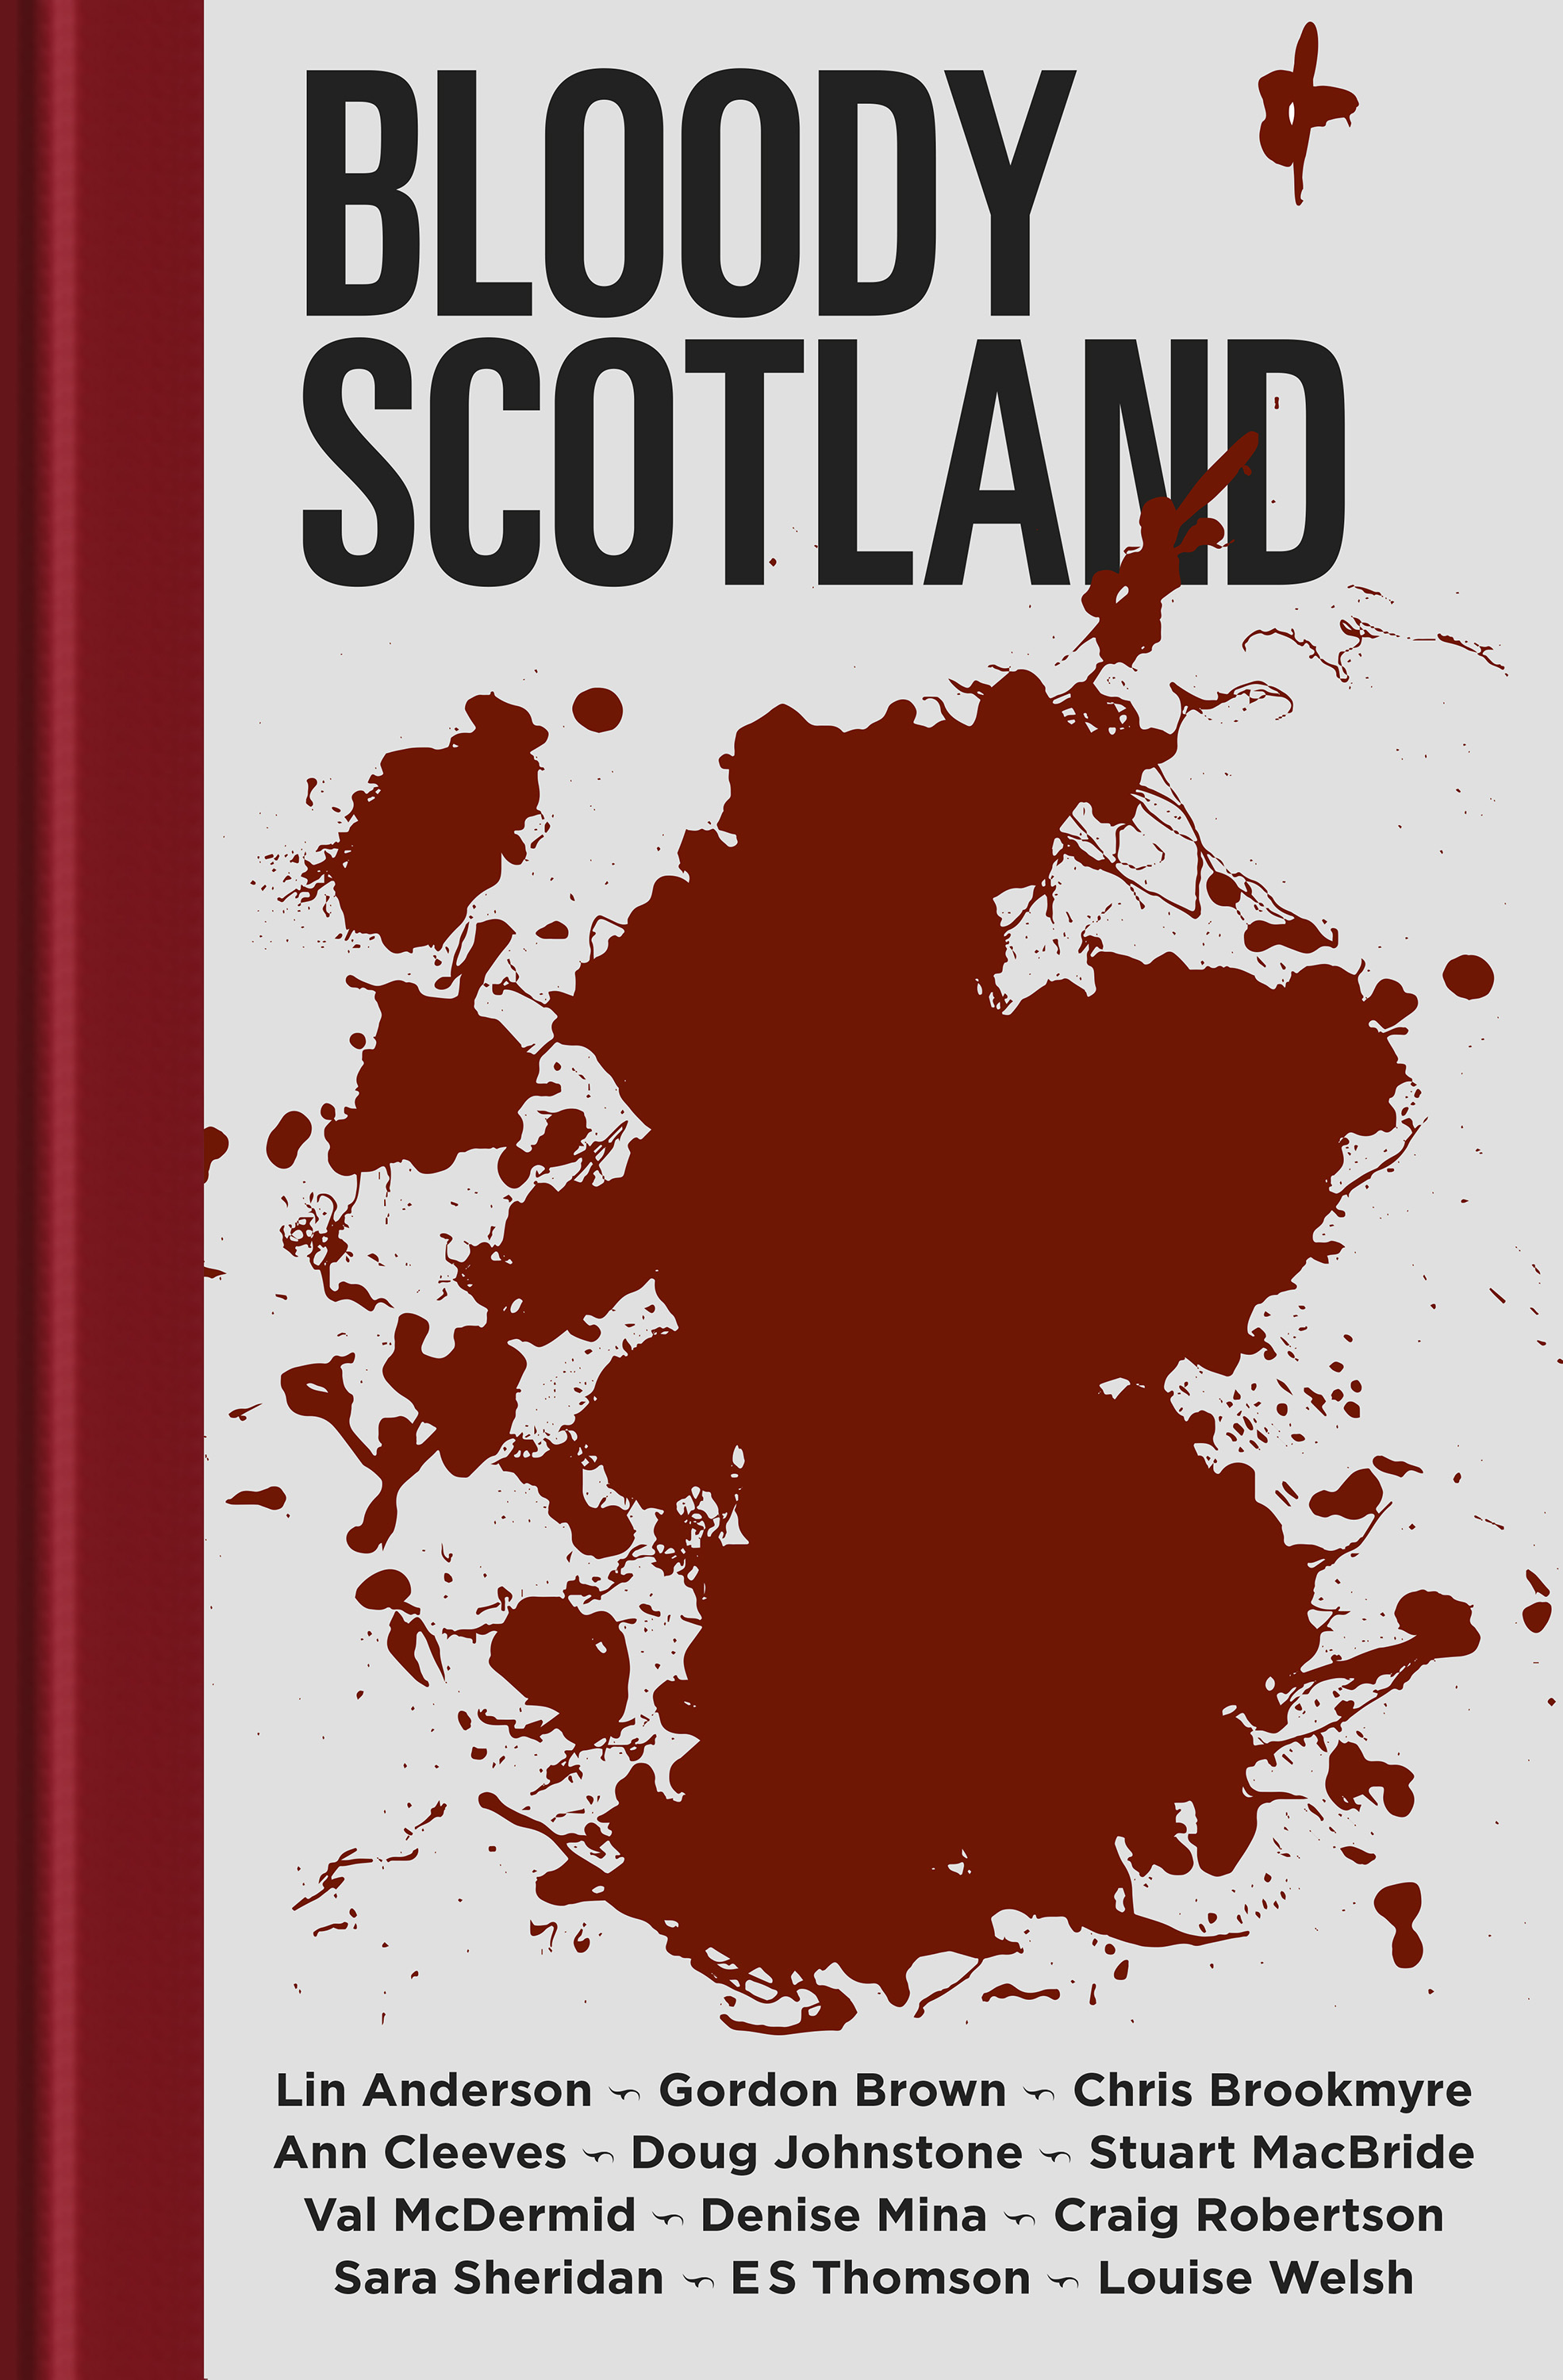 Bloody_Scotland_mock_03.indd